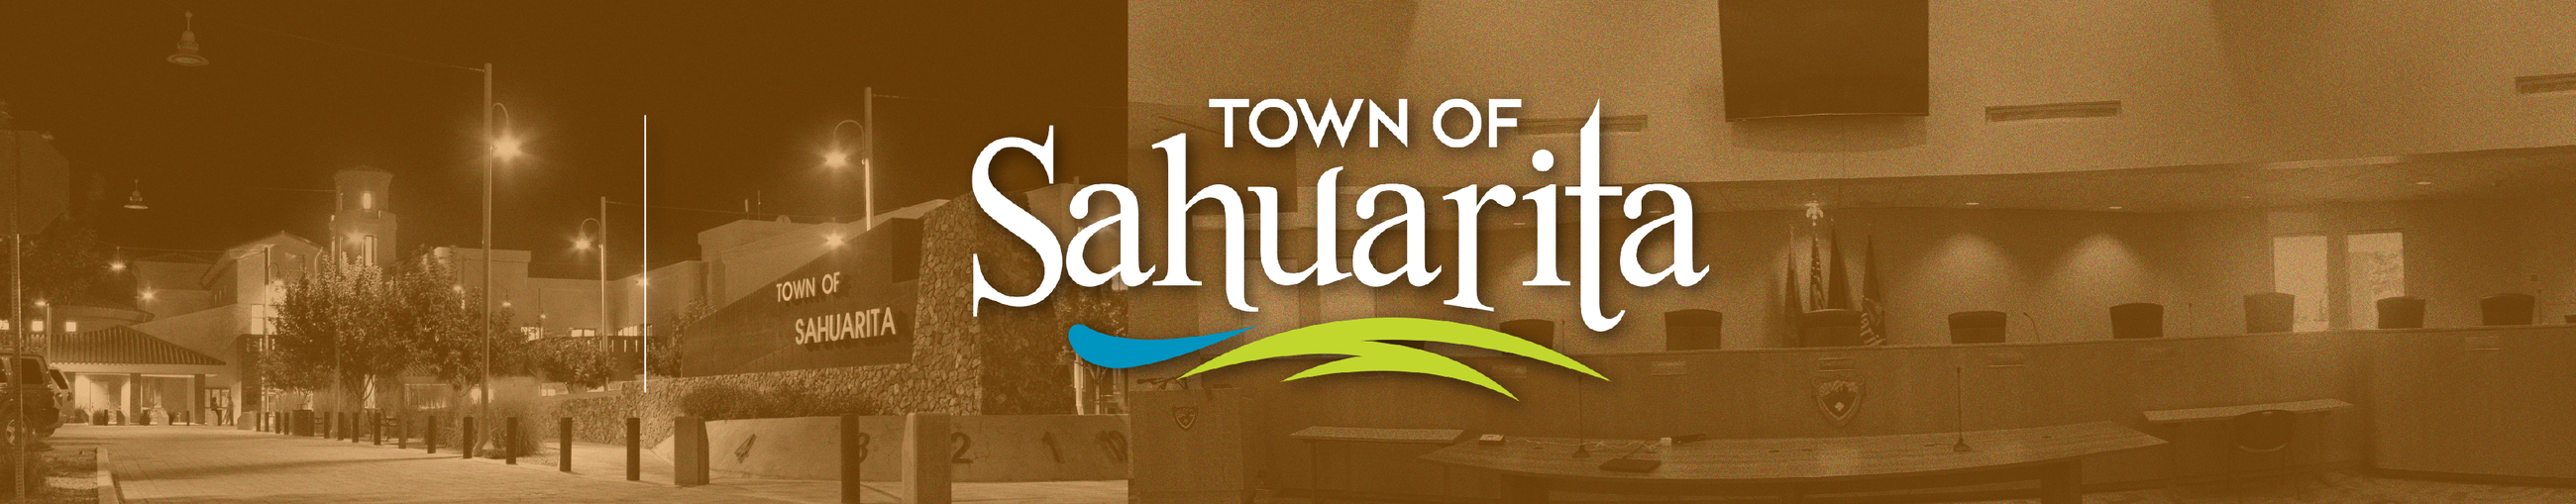 Town of Sahuarita - Mayor and Council Banner - Main Page